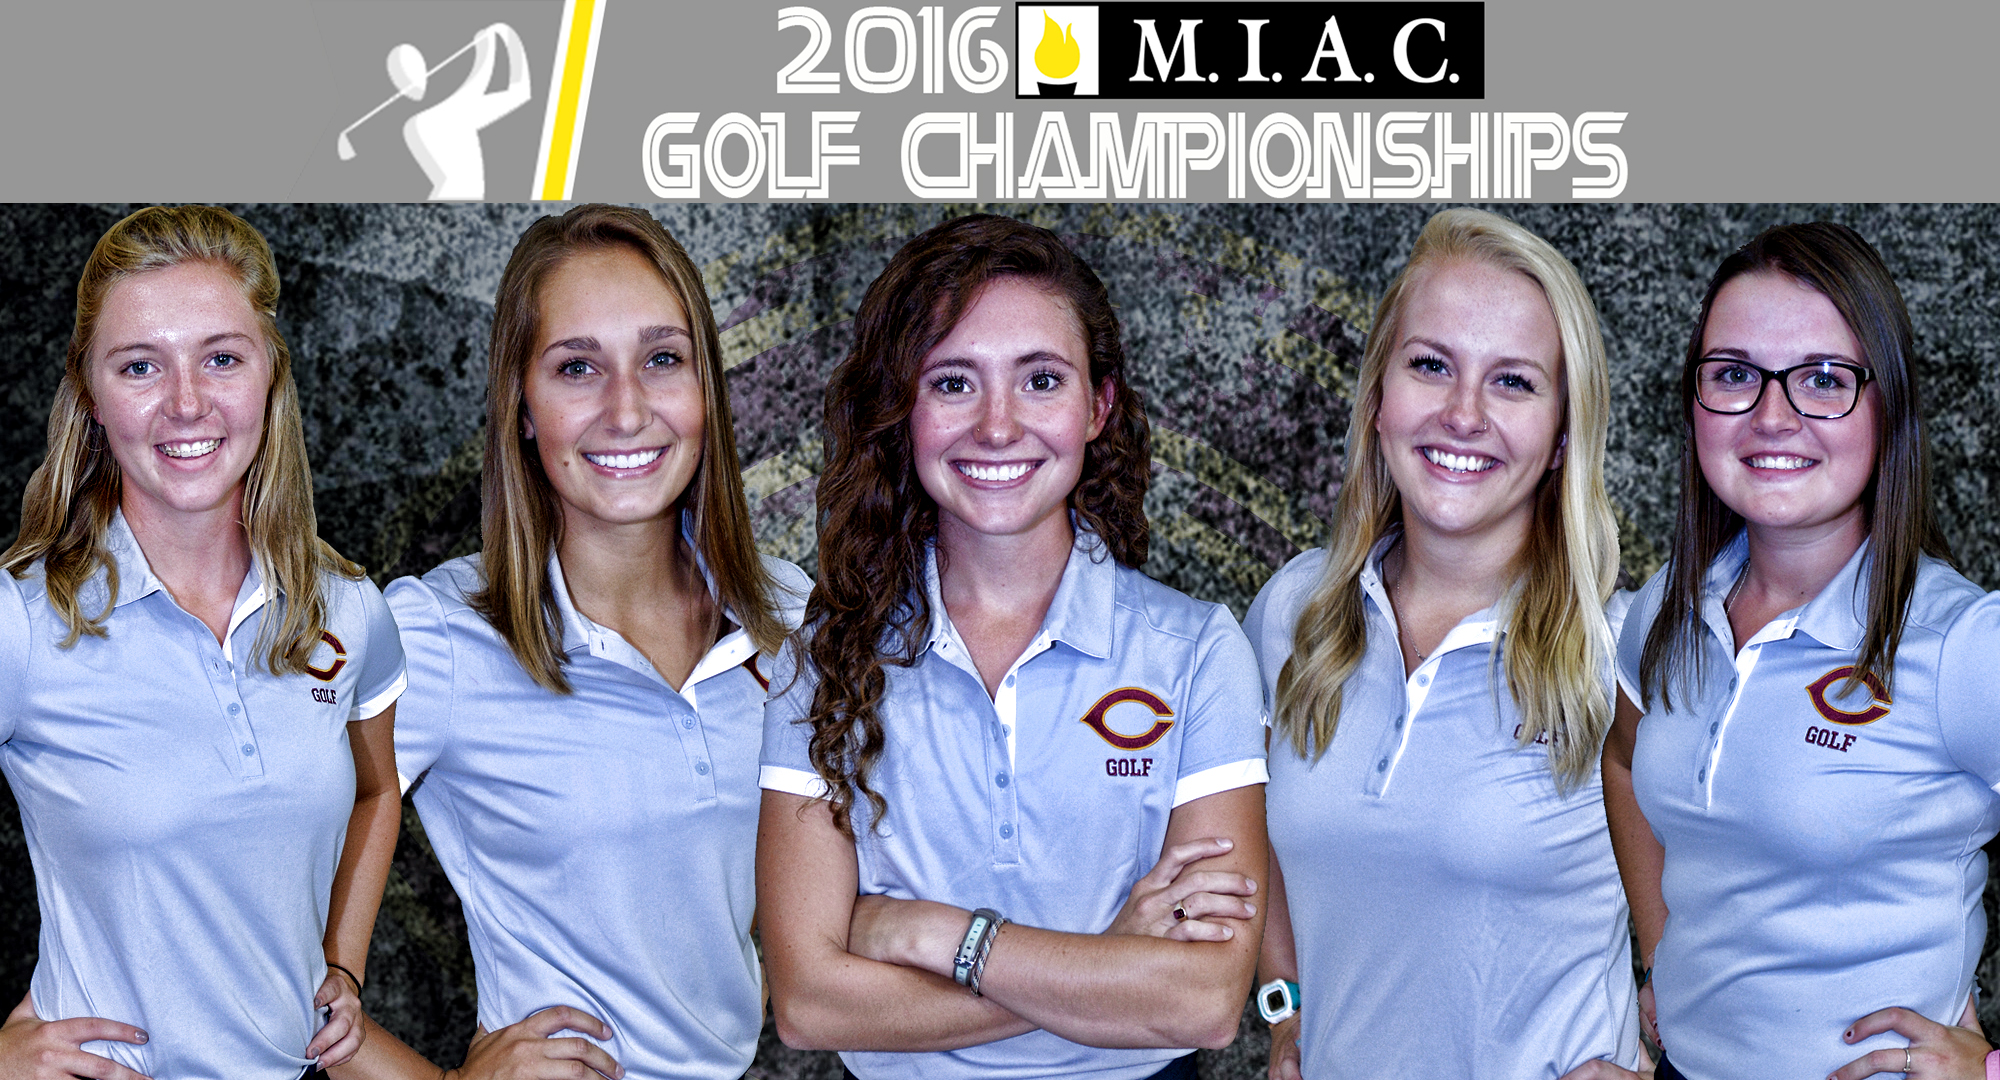 The Concordia lineup for the 2016 MIAC Championship Meet includes (L-R): Katie Froemke, Erin Pennington, Emily Grace Olson, Emily Ladd and Katie Krueger